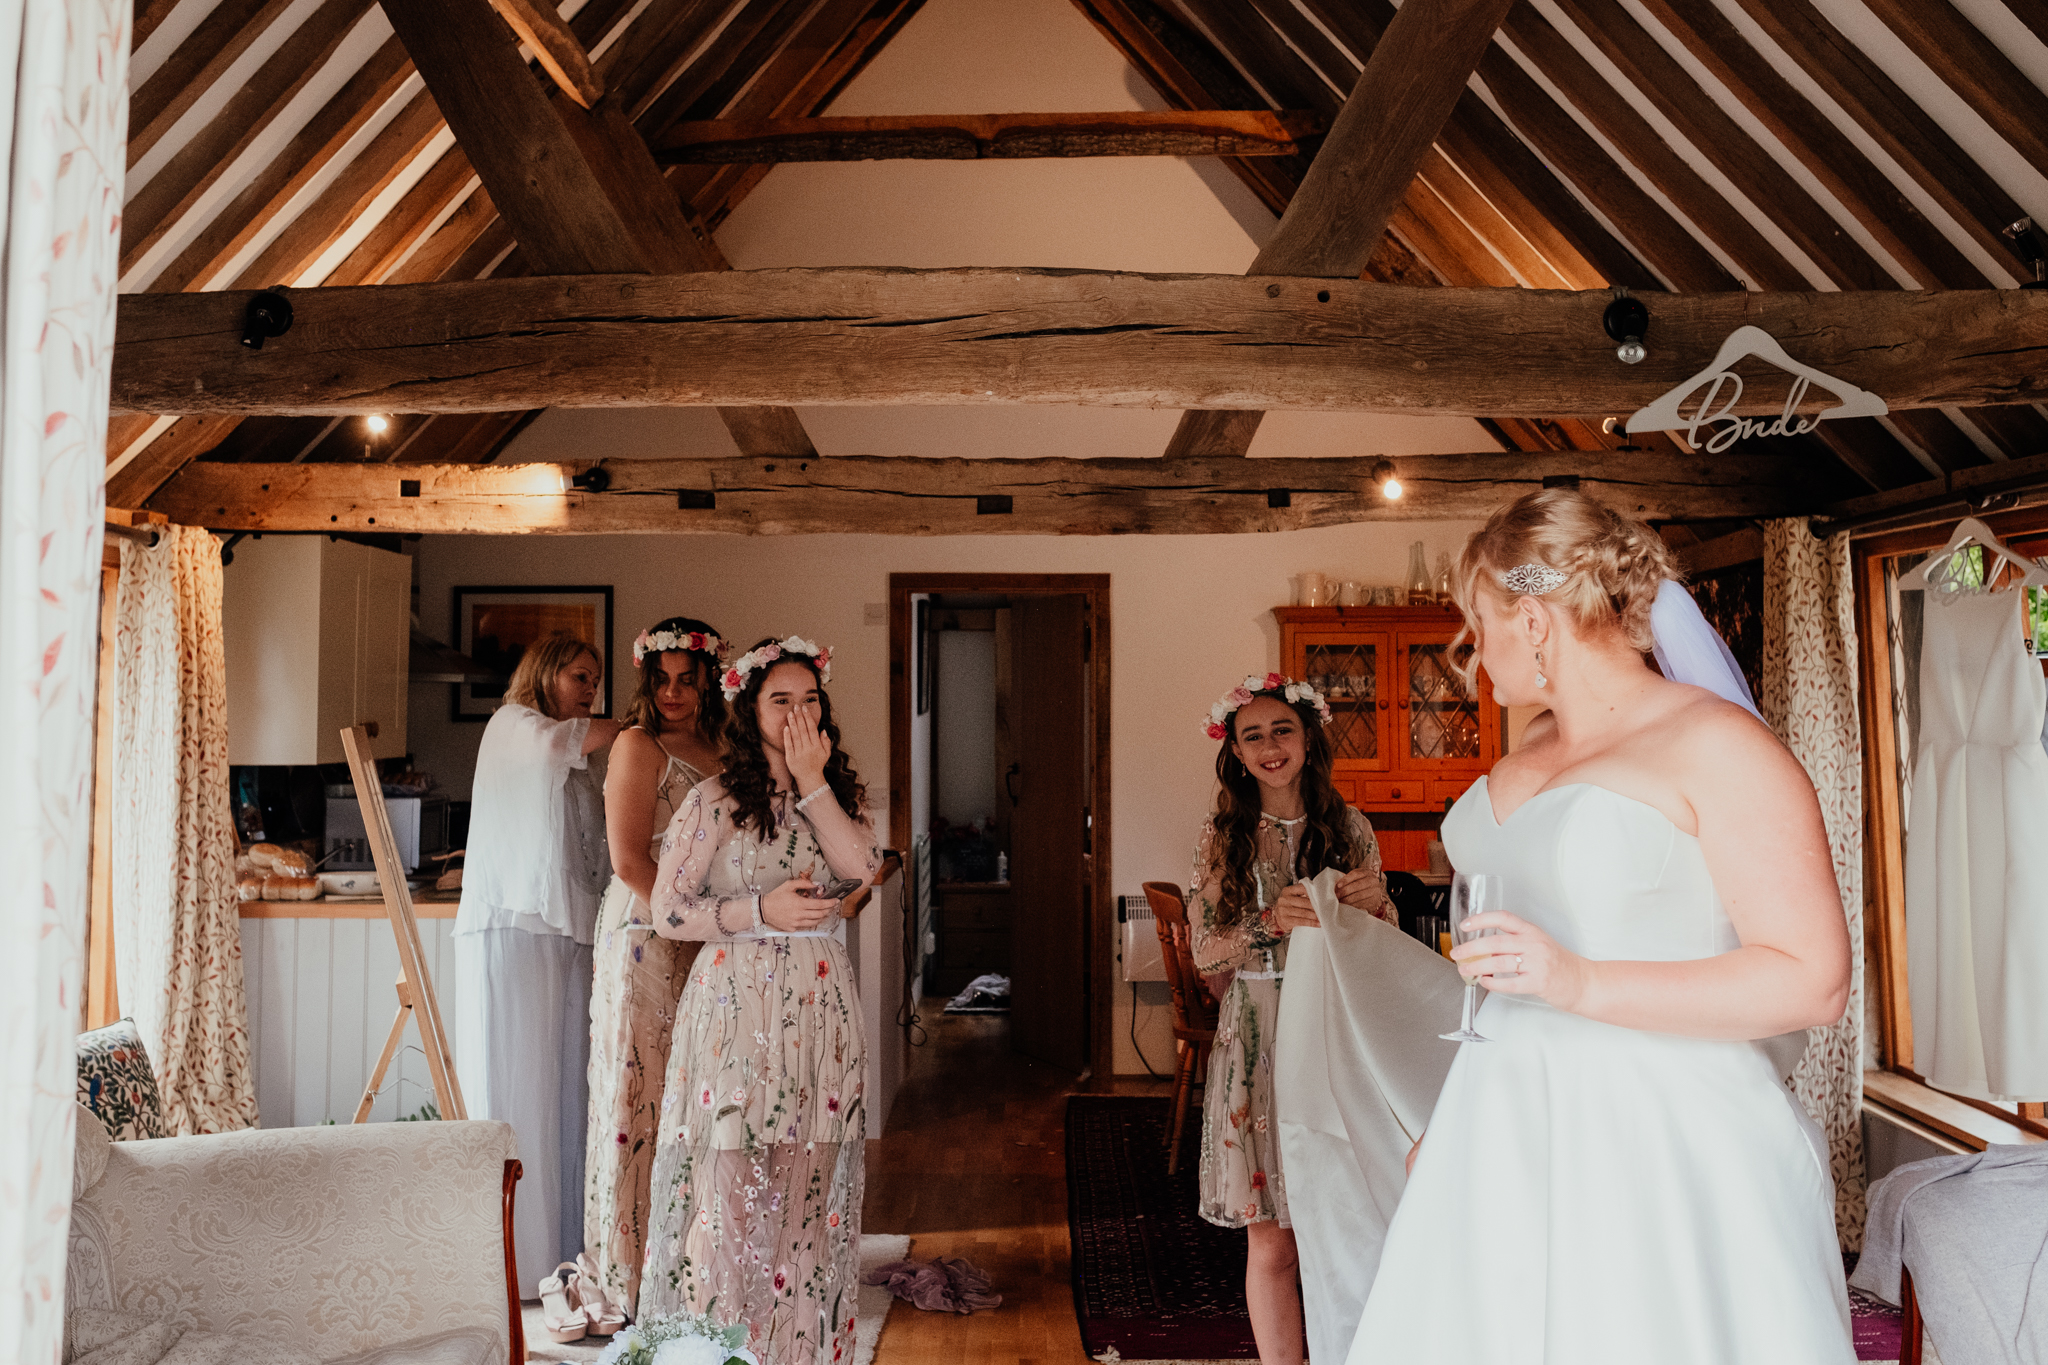 Bridesmaids gasp as Bride gets ready